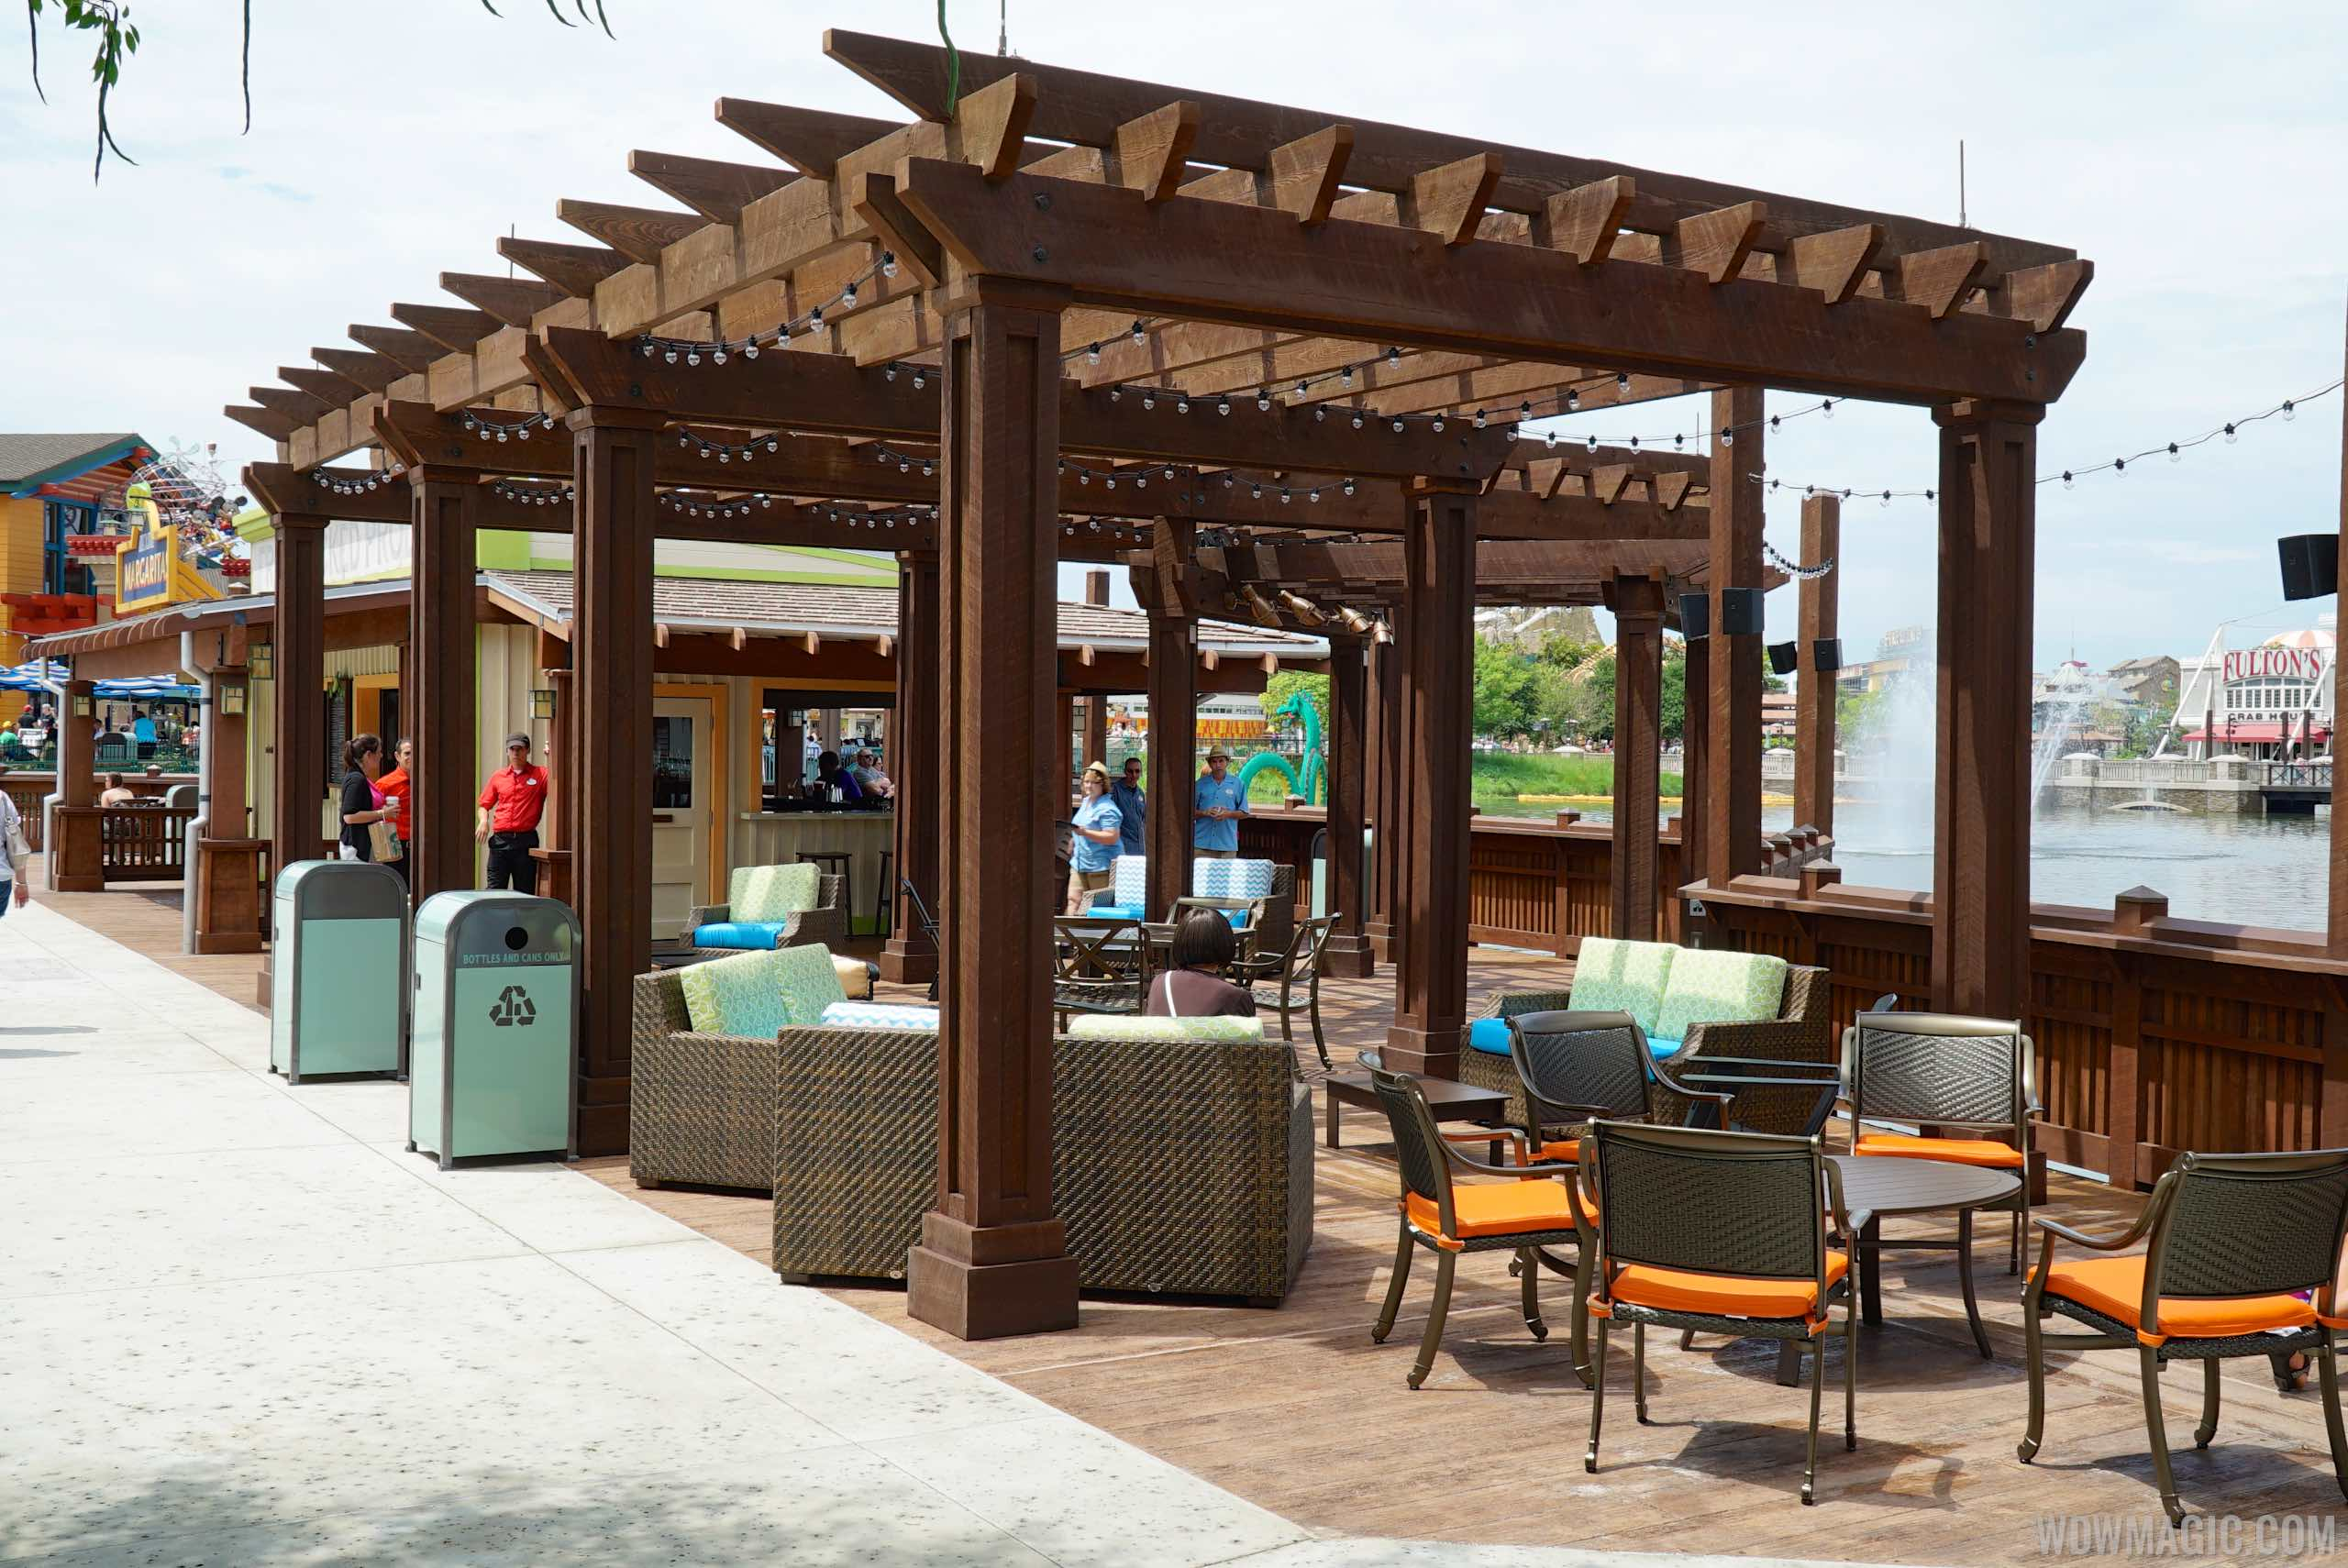 Dockside Margaritas opened in 2015 in the Marketplace